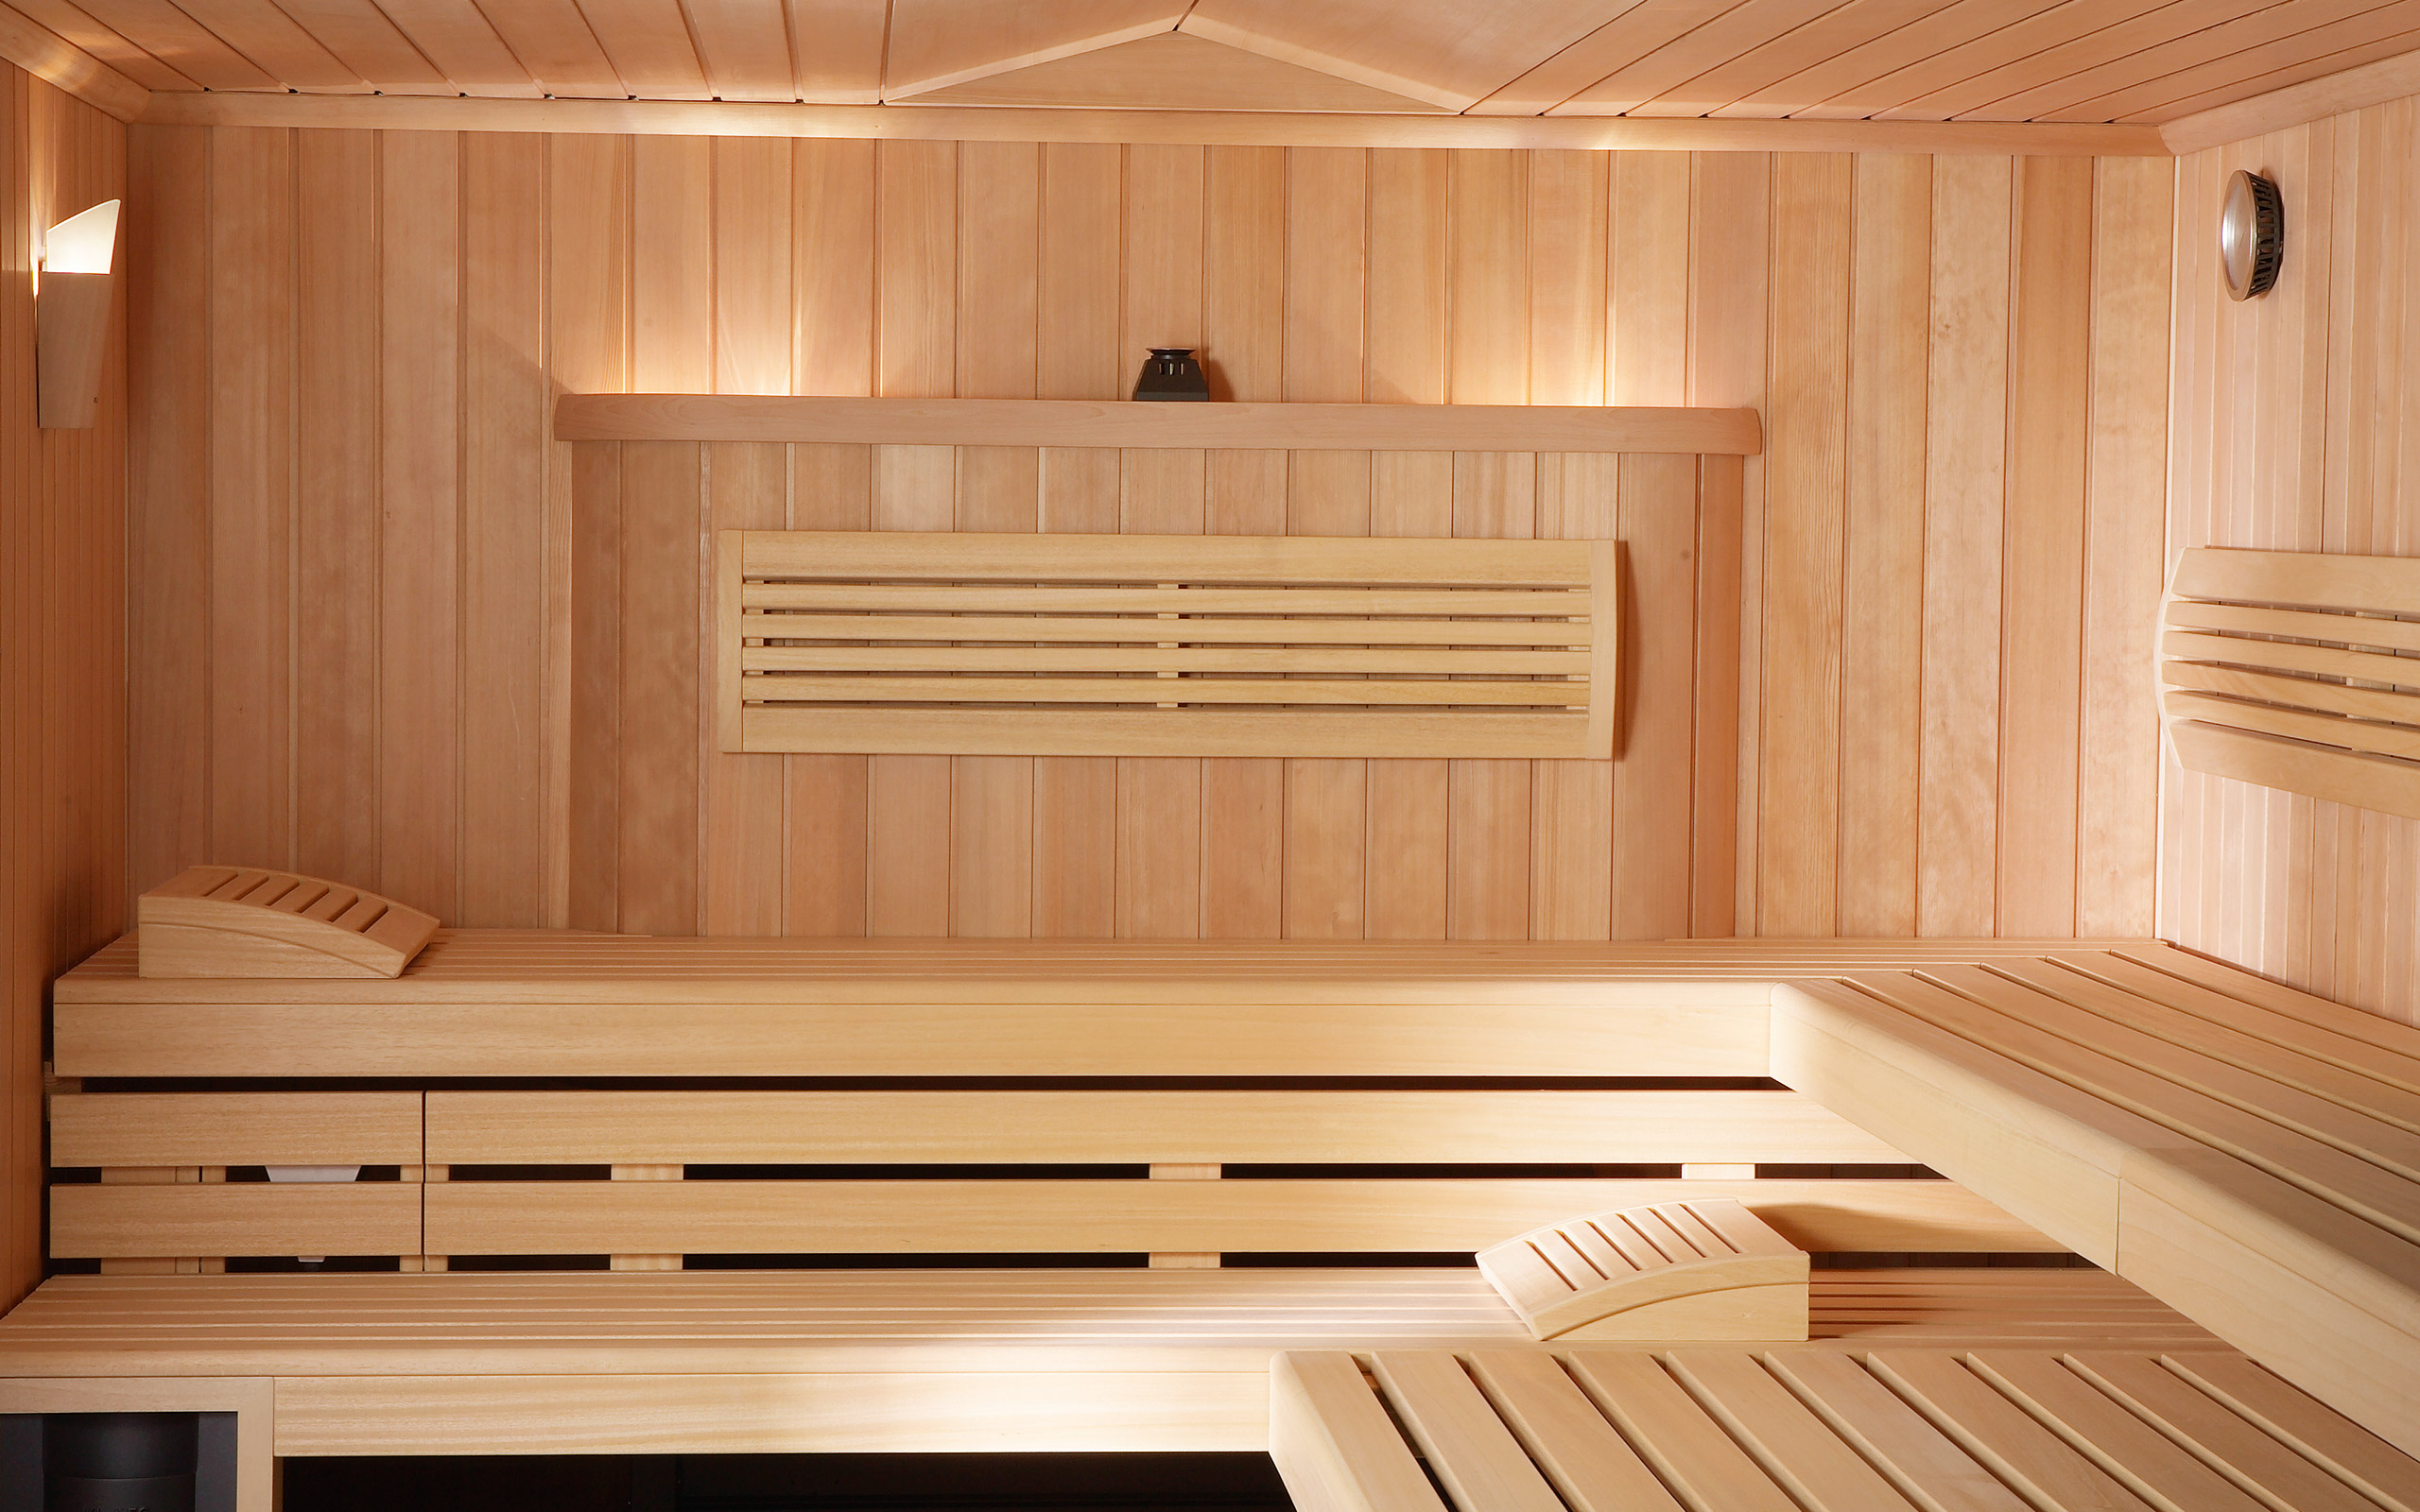 sauna premium le sauna de qualit sup rieure et personnalis. Black Bedroom Furniture Sets. Home Design Ideas